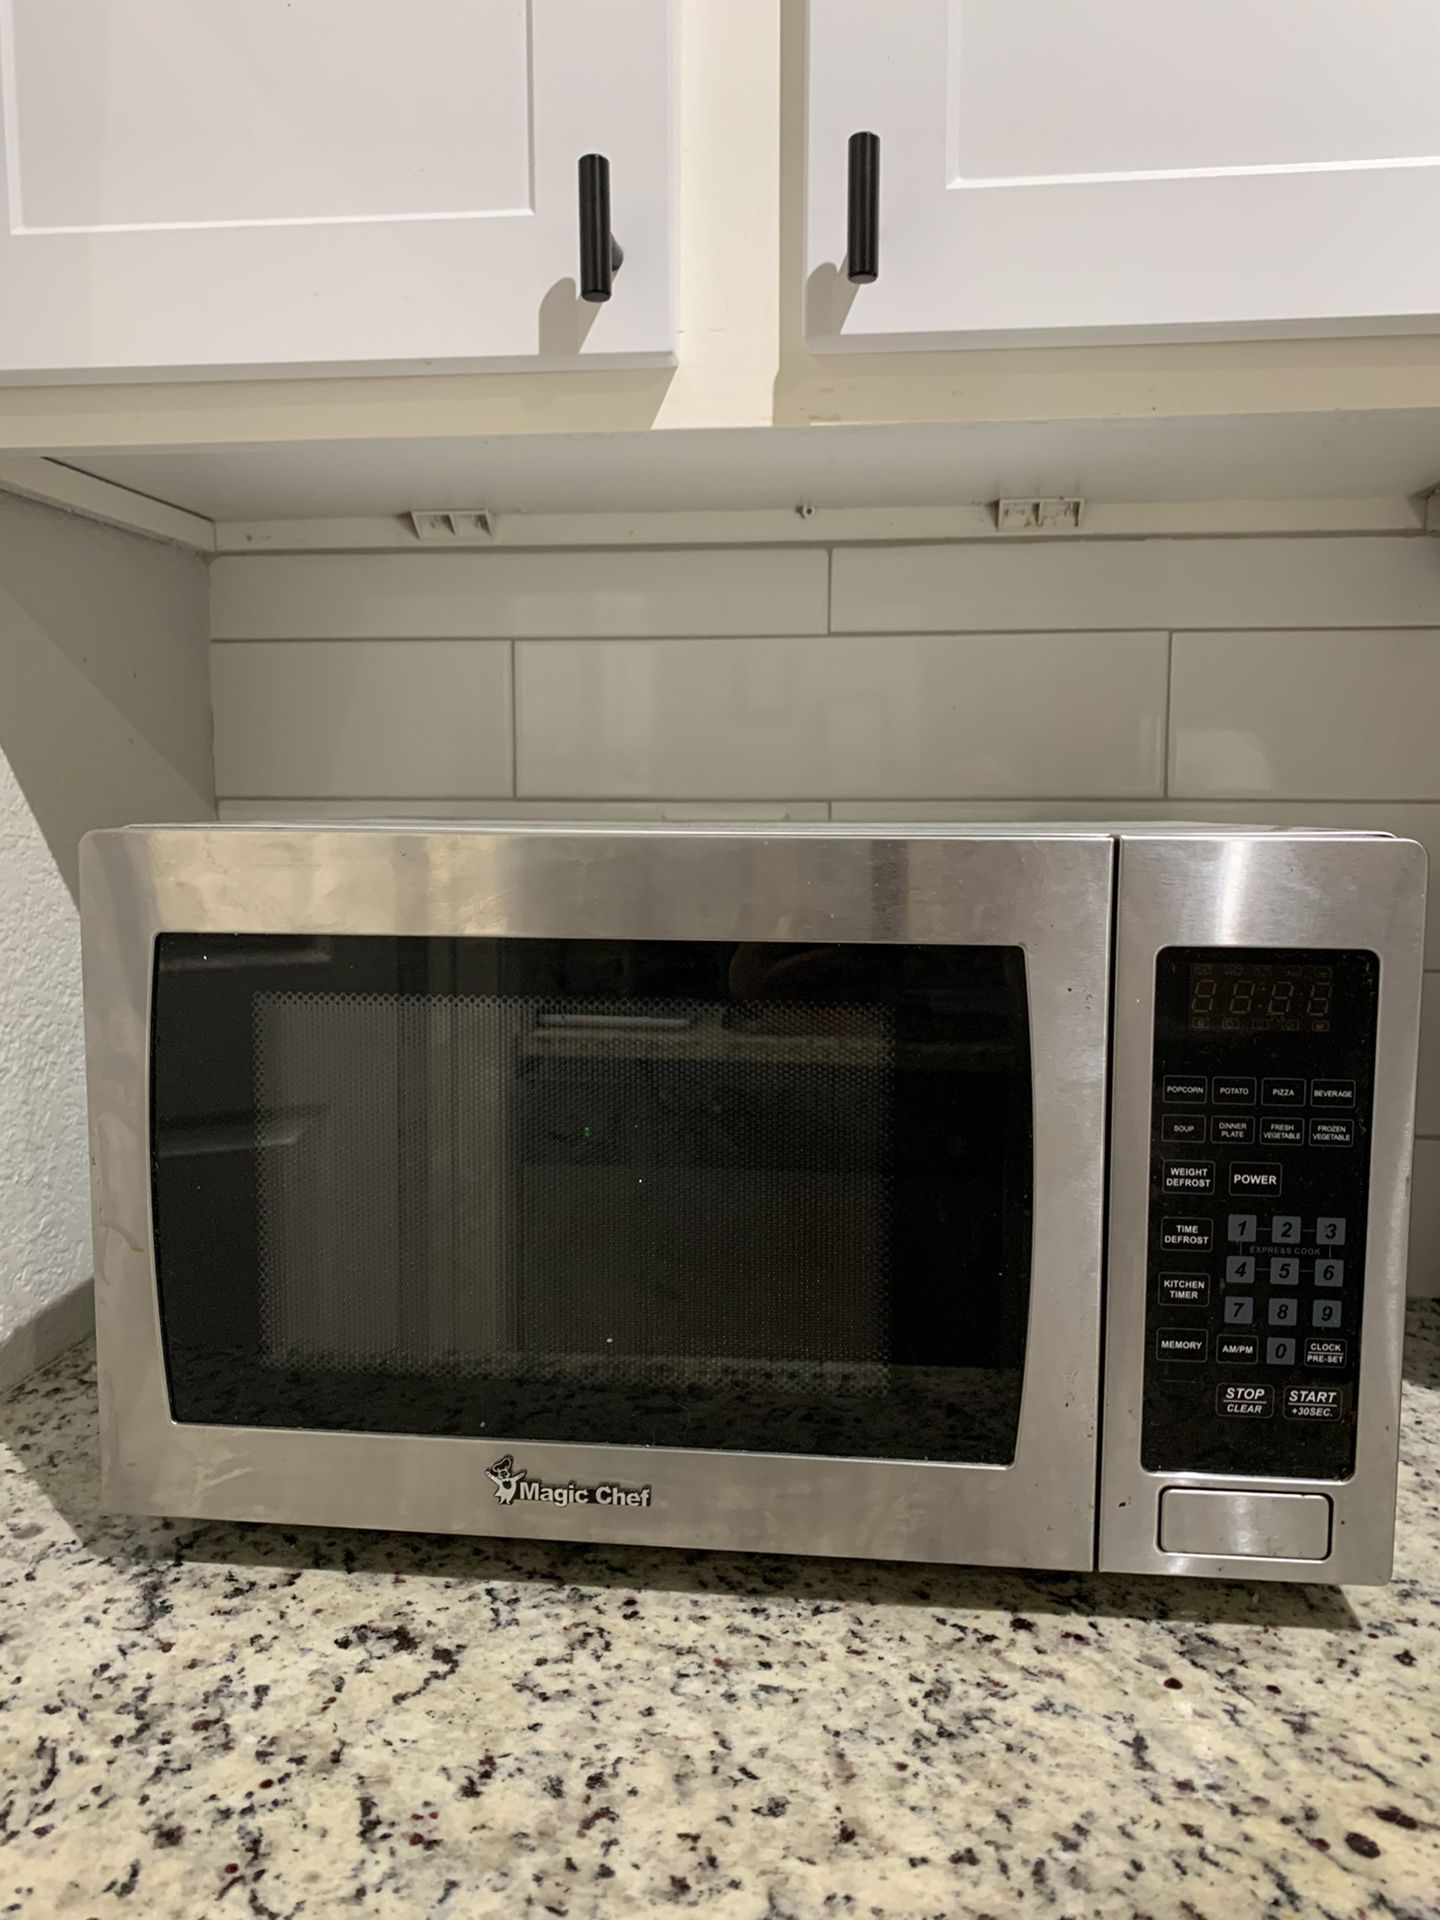 Magic Chef 0.9 Cu.Ft. 900 W Countertop Microwave Oven With Stainless Steel Front